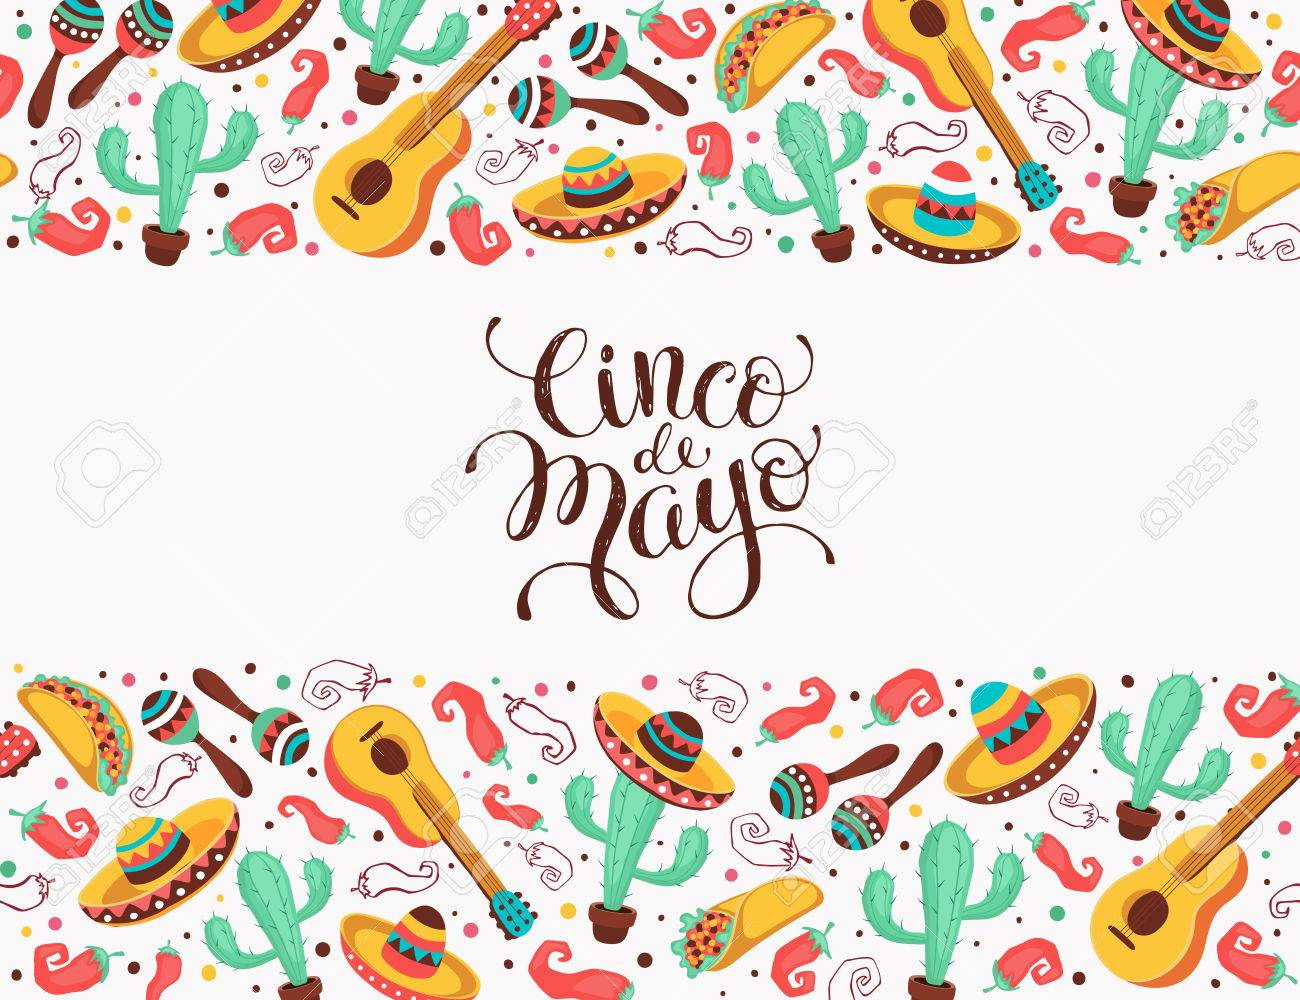 Cinco De Mayo Poster In Horizontal Stripe Composition Mexican Culture Symbols Collection Guitar